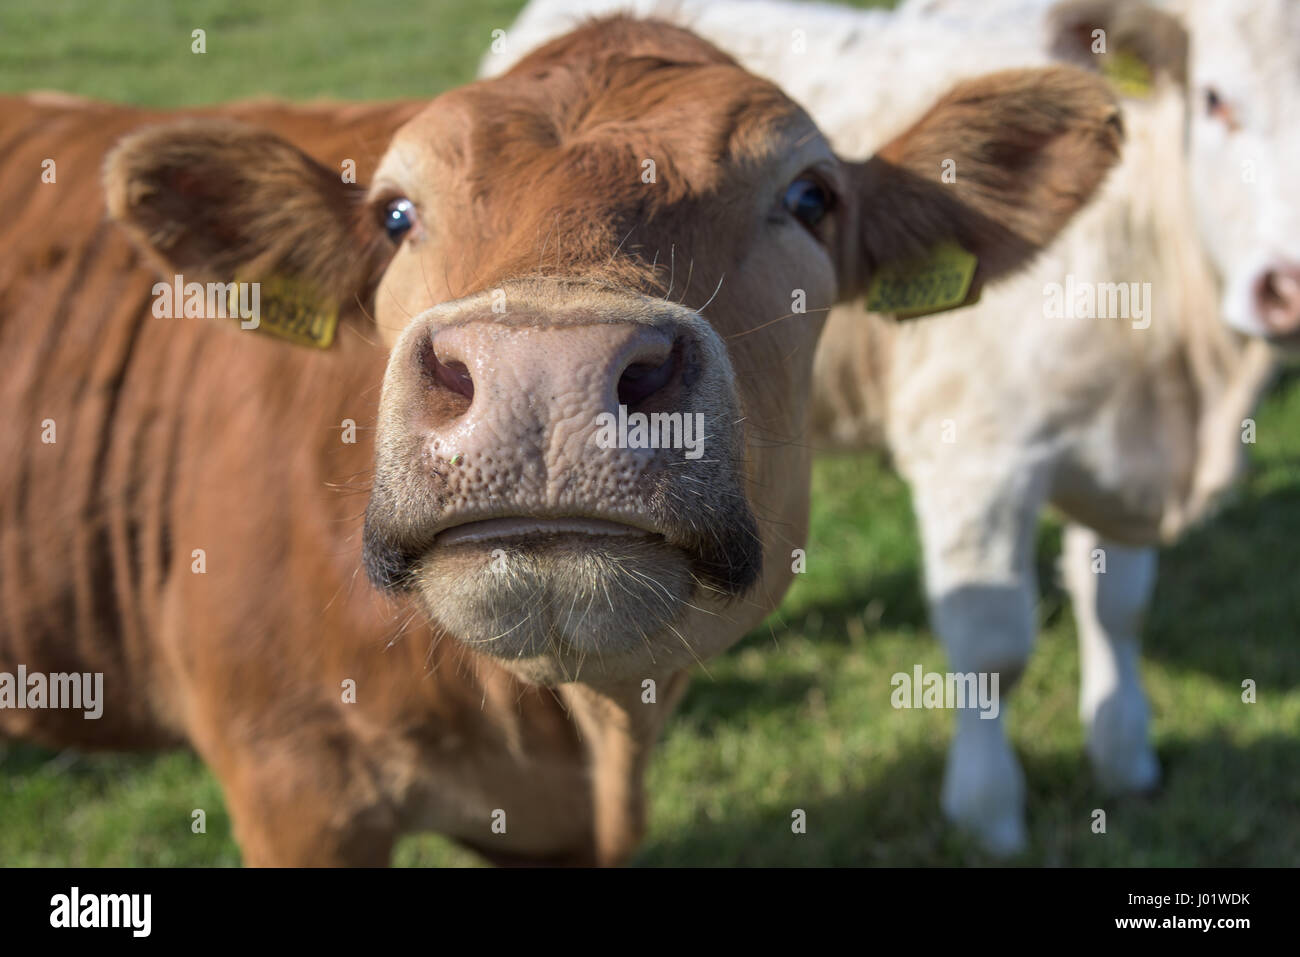 Funny cow image - Stock Image